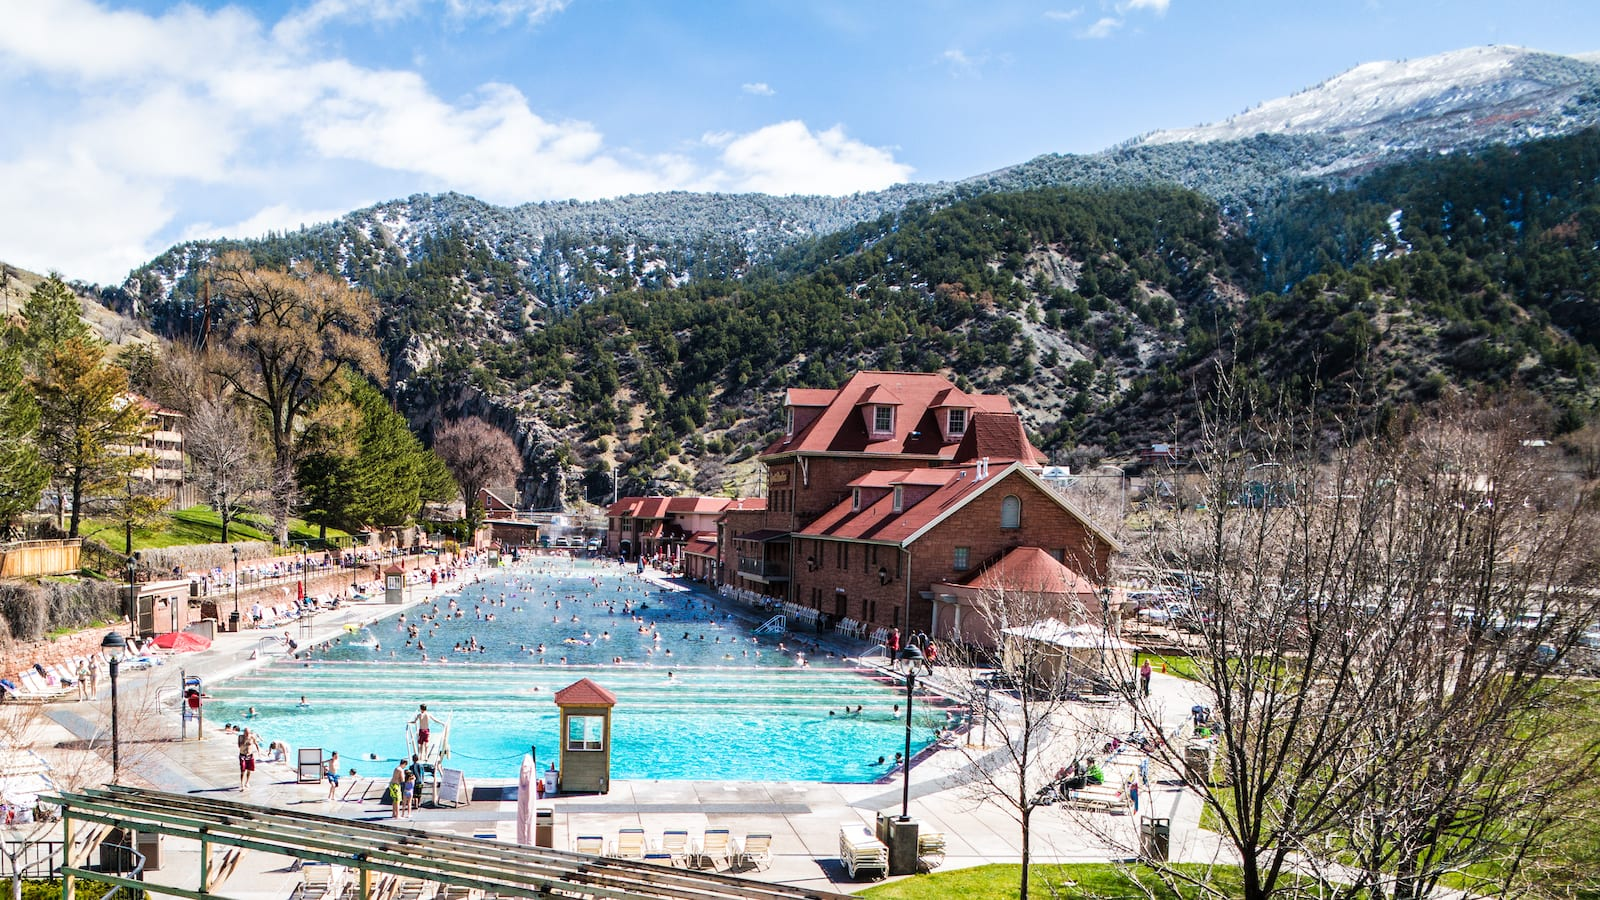 Glenwood Hot Springs Swimming Pool Mountains